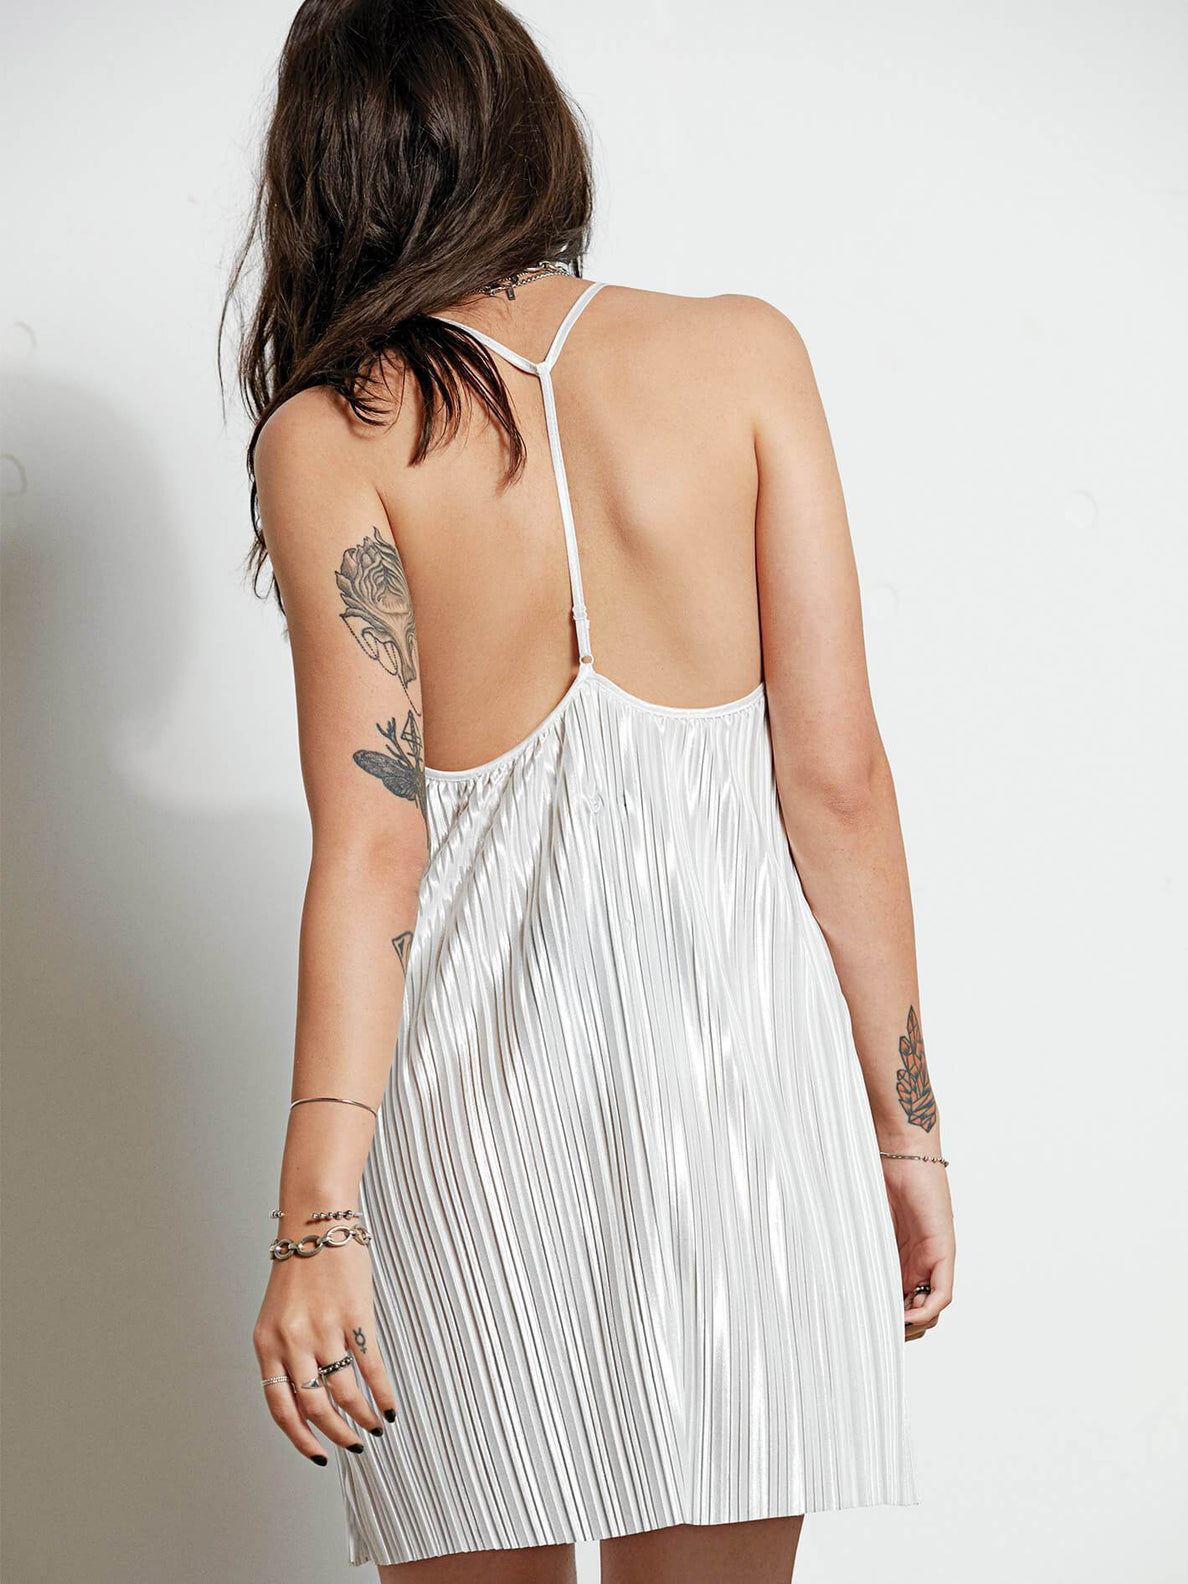 Just Pleat It Dress - Brushed Nickle